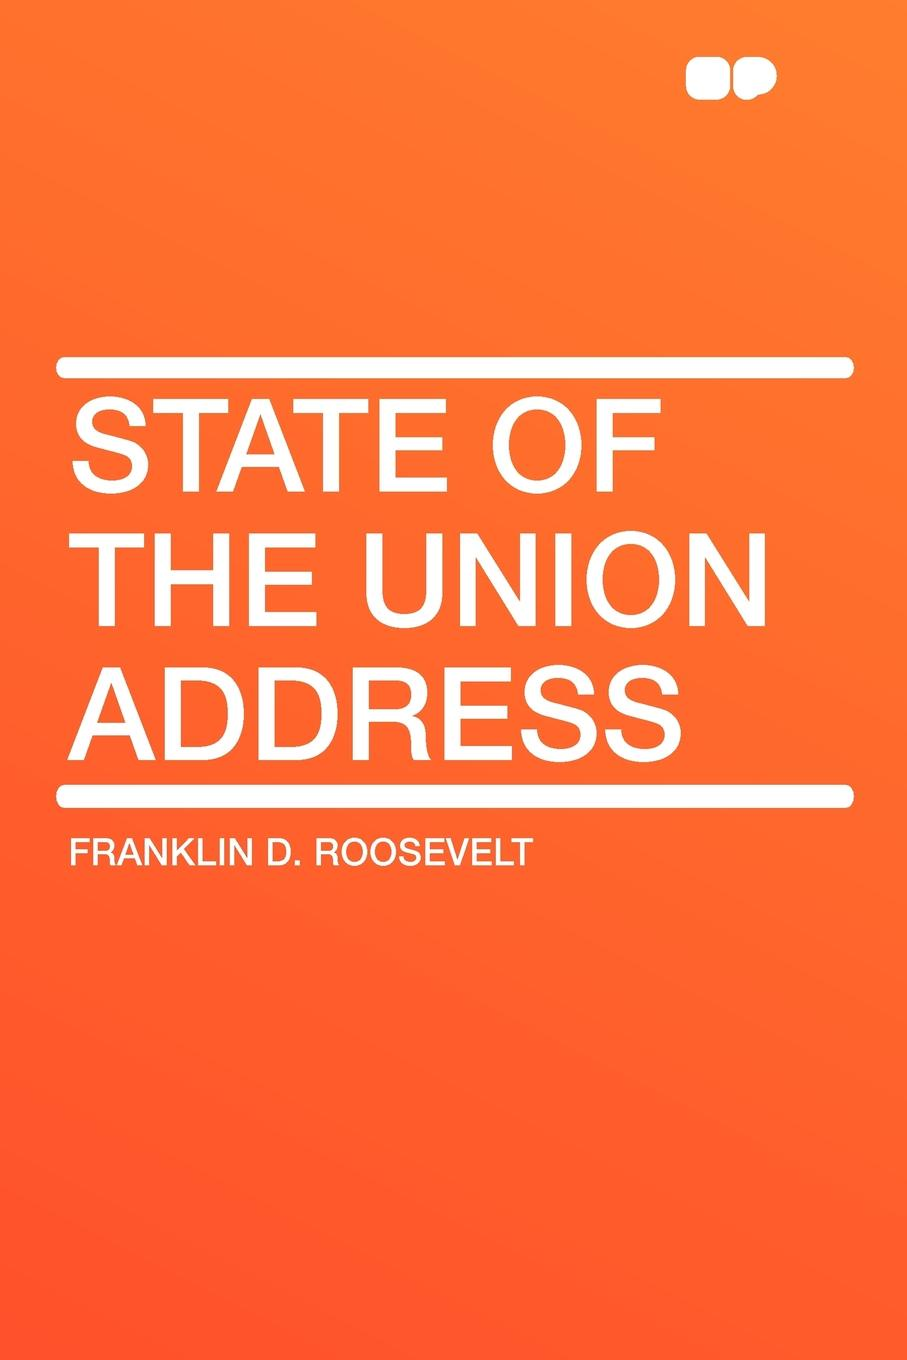 Franklin D. Roosevelt State of the Union Address john f kennedy state of the union address